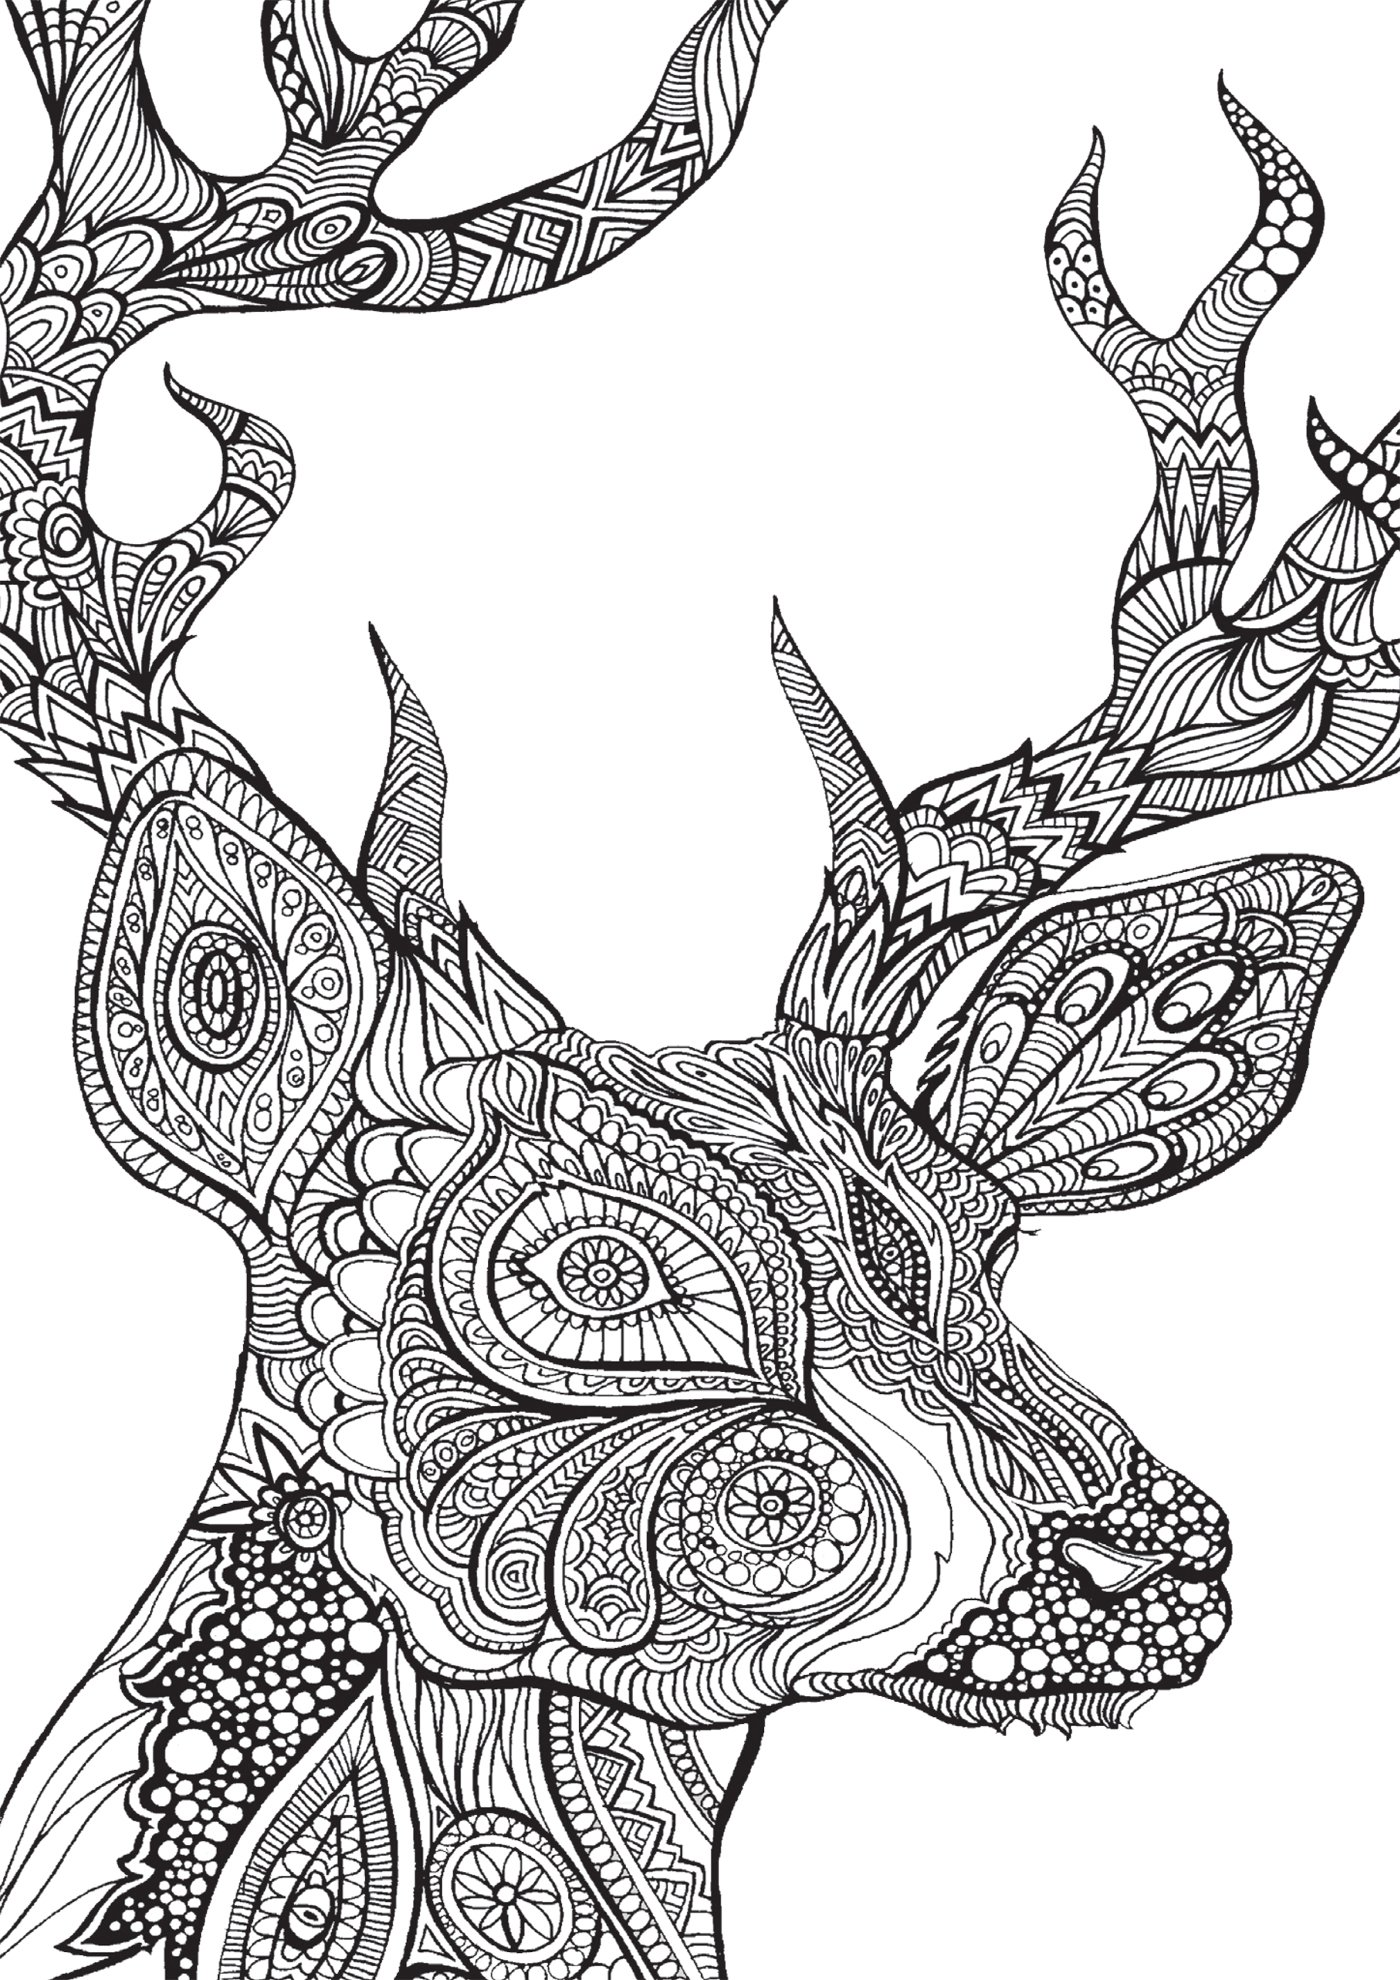 Art Therapy Coloring Book In The Art th rapie relaxation